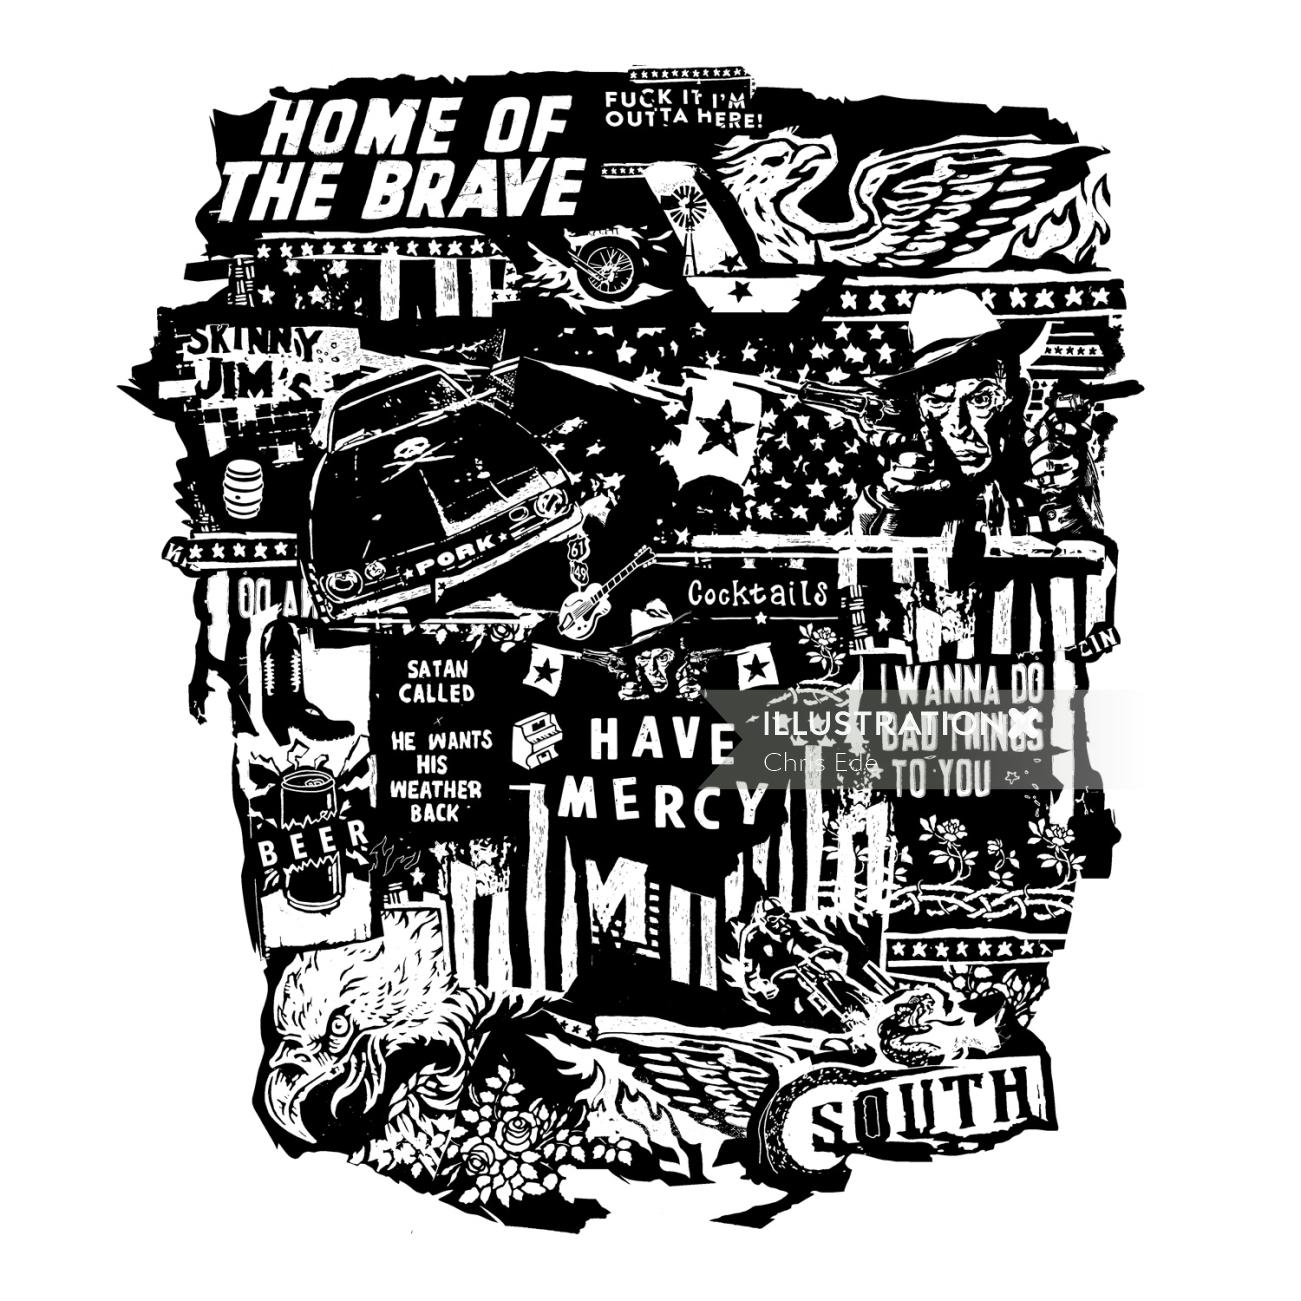 Home of the Brave Historical montage